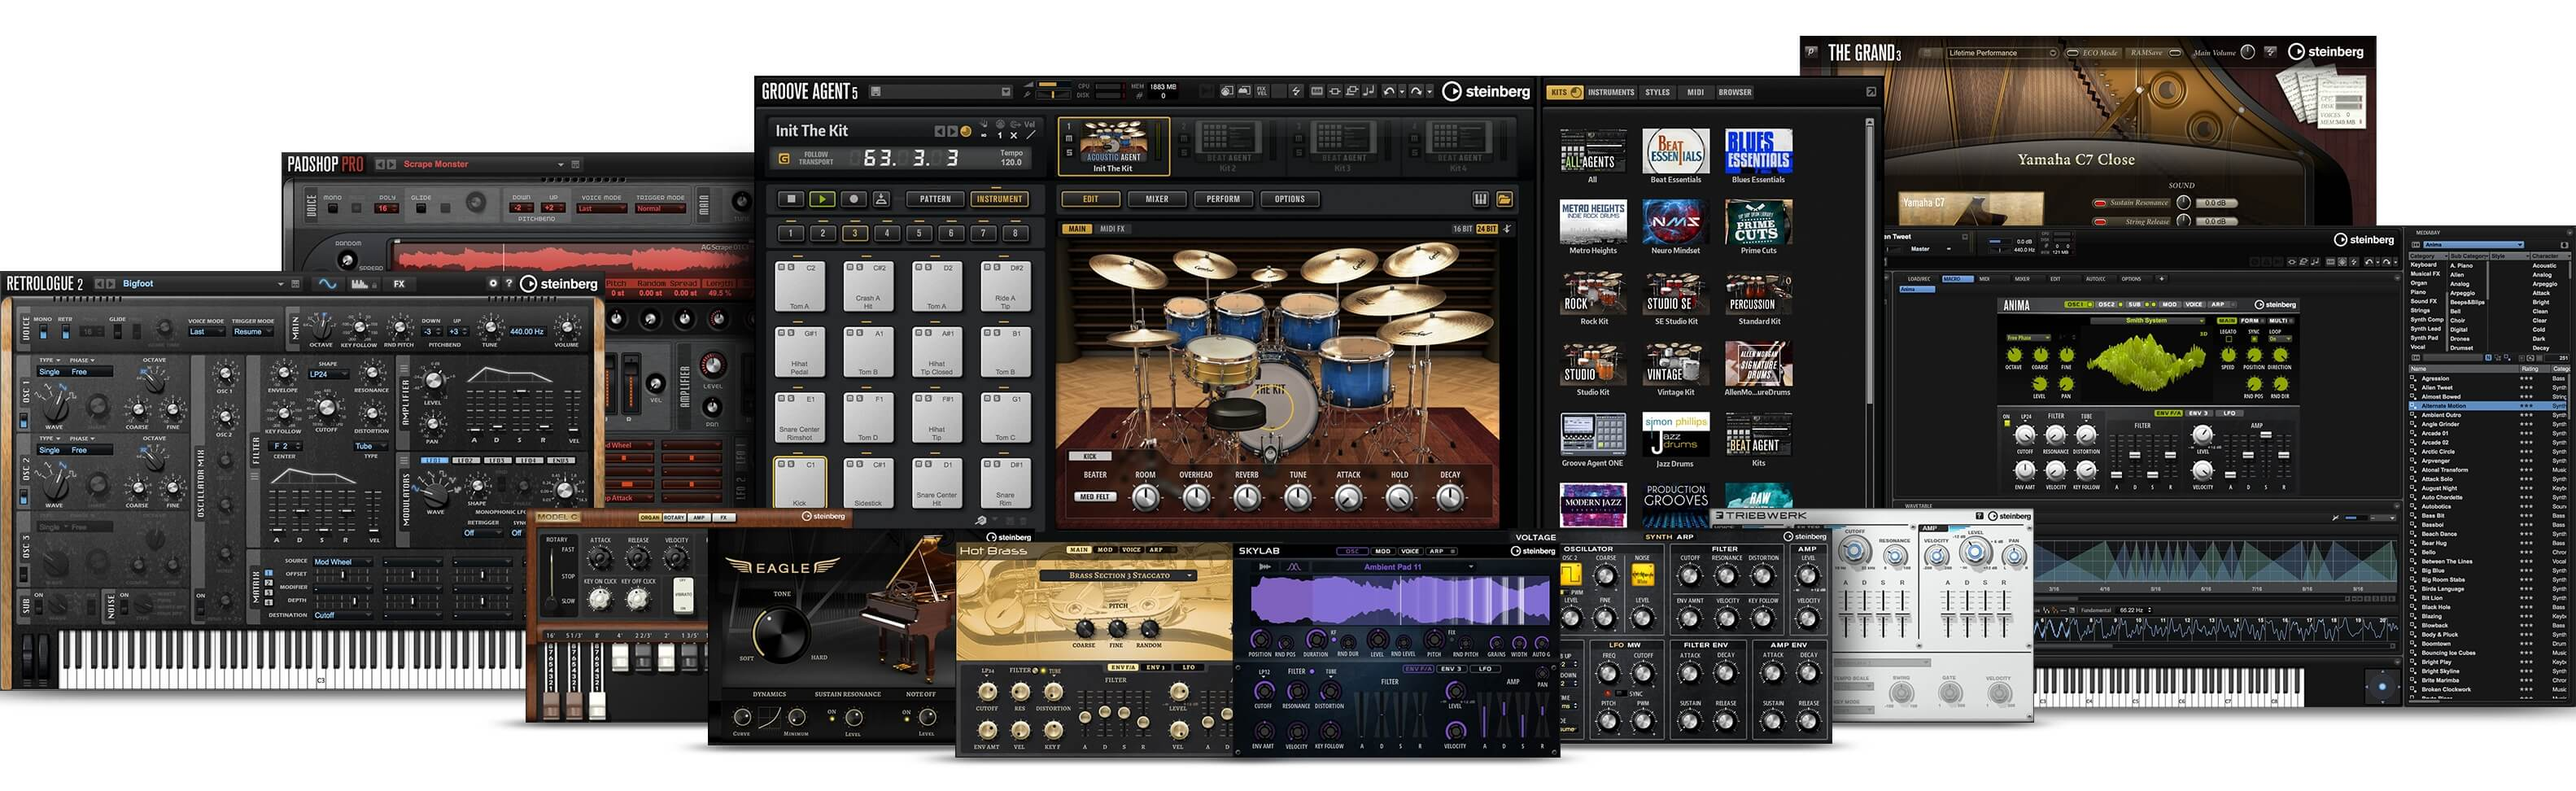 Steinberg unveils Absolute 4 virtual instrument collection at Winter